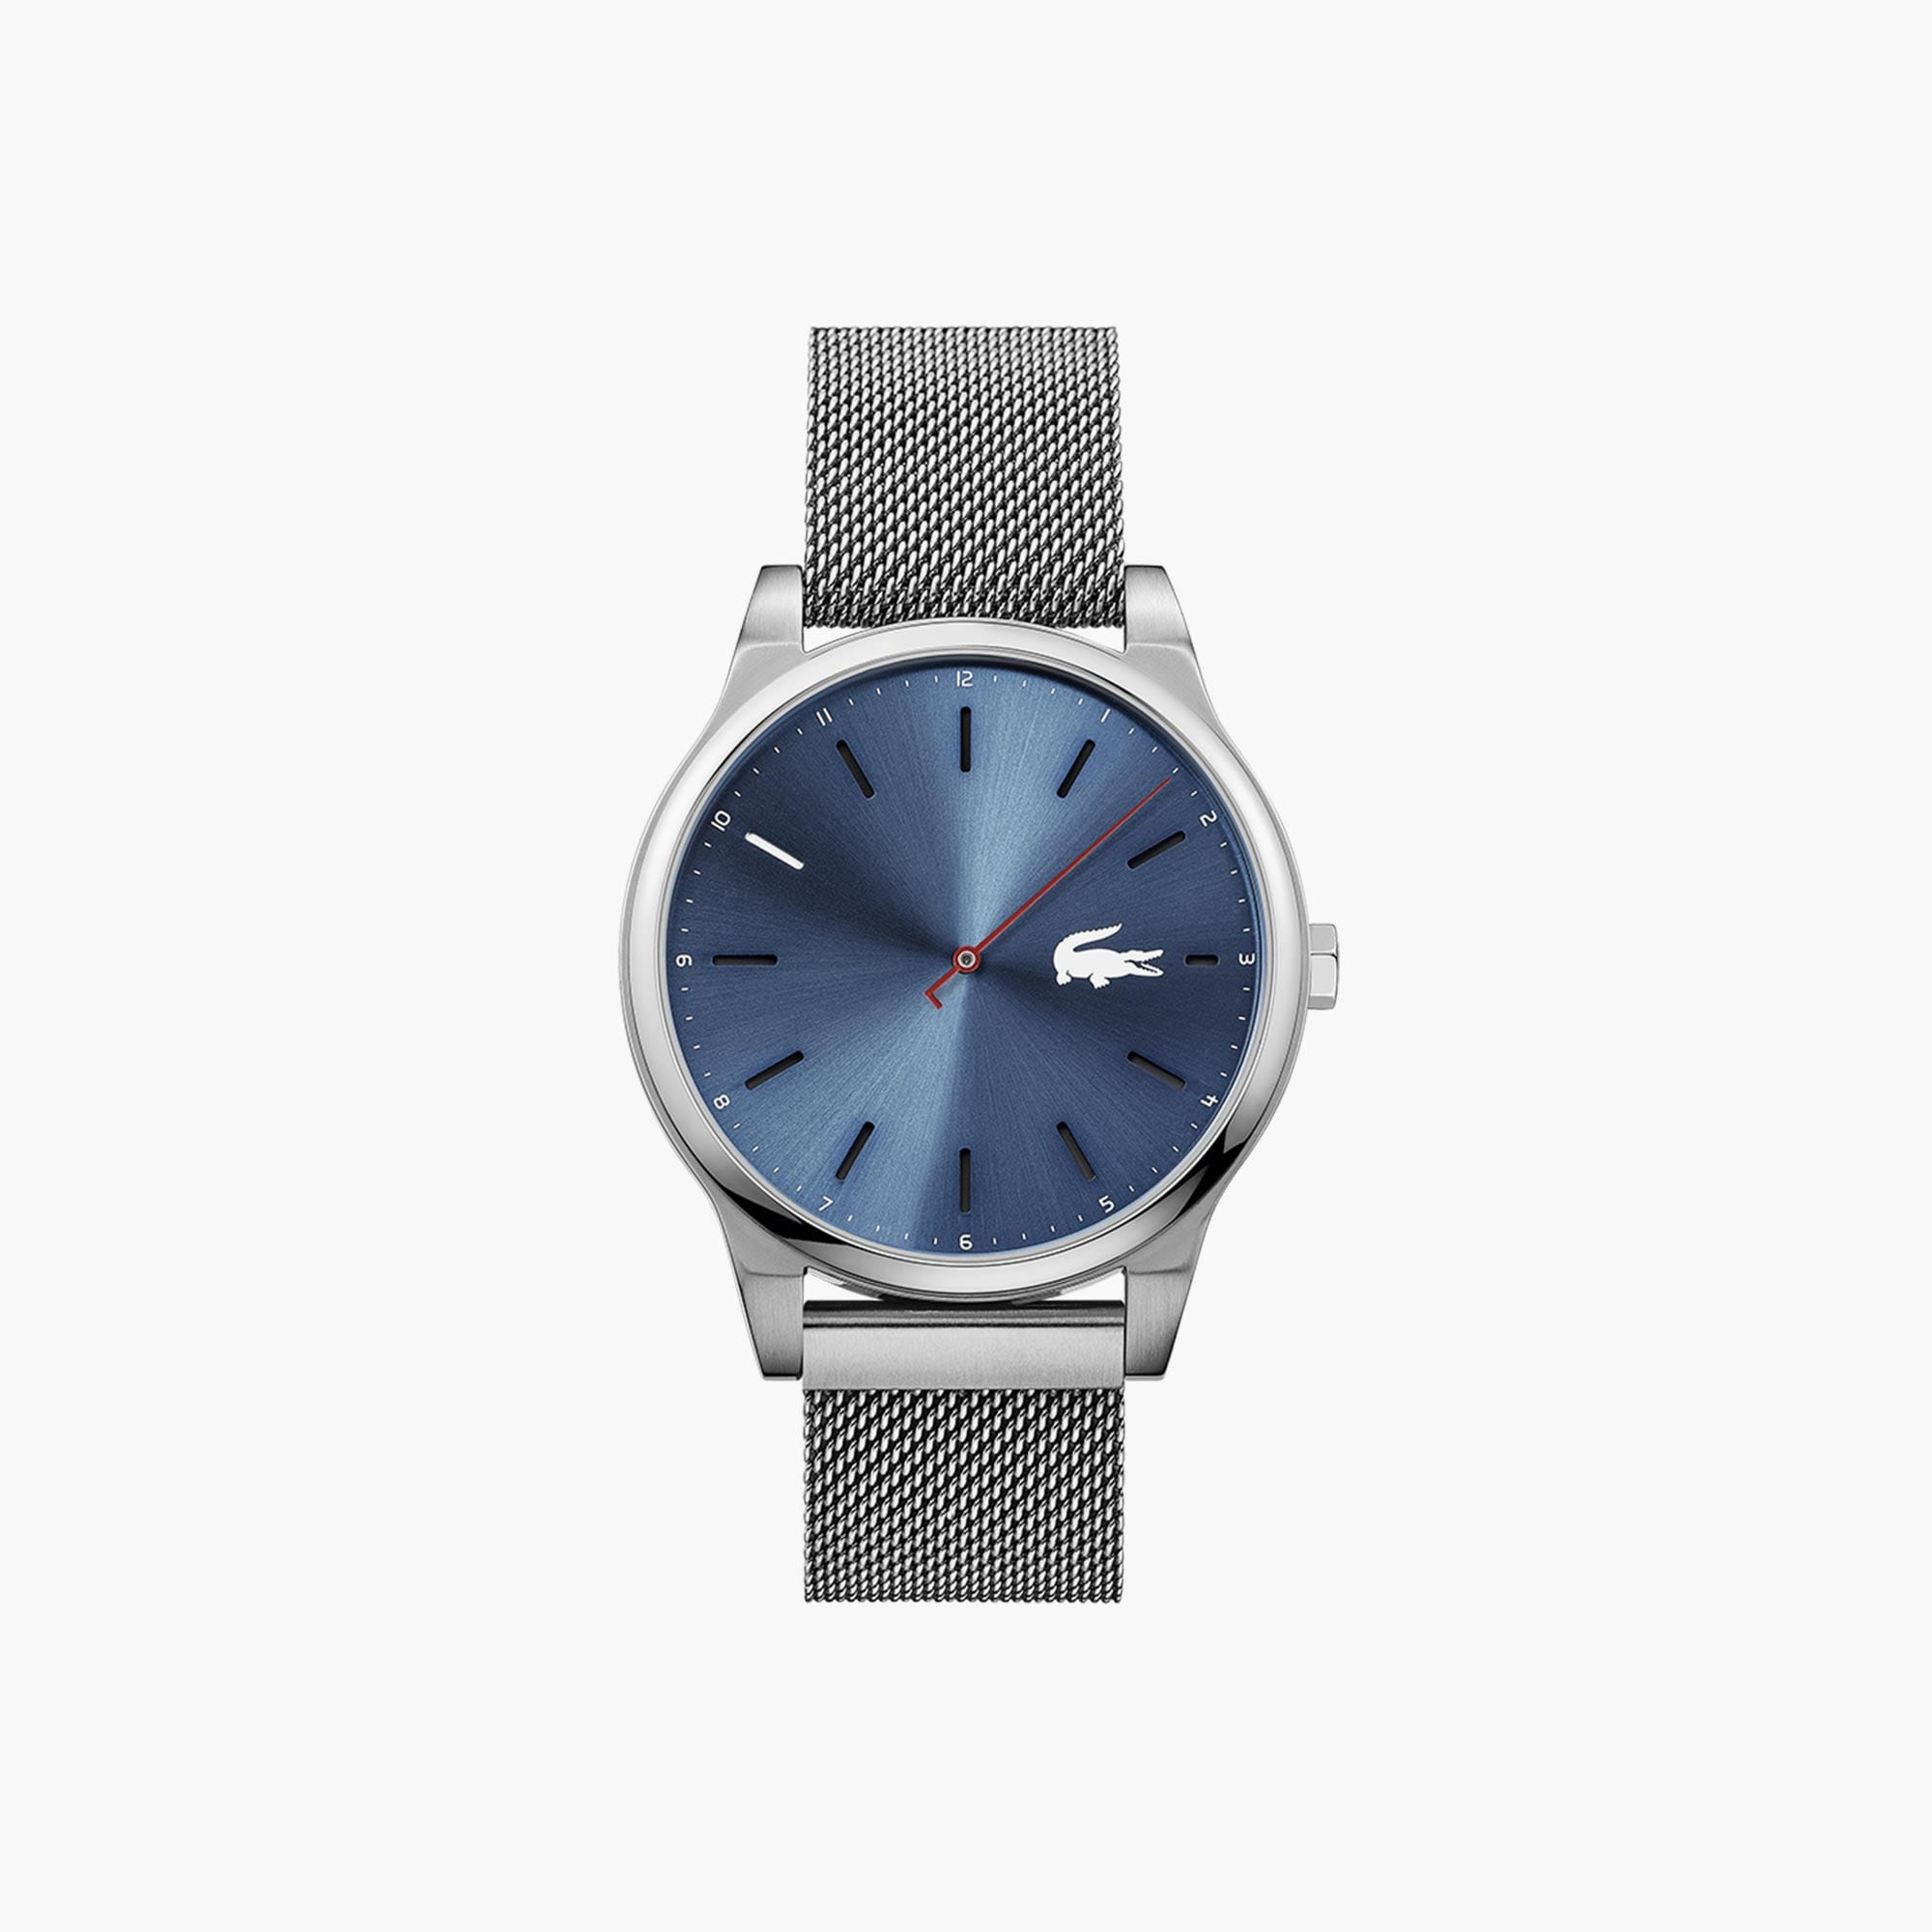 Men's Kyoto Watch with Stainless Steel Mesh Bracelet and Blue Dial